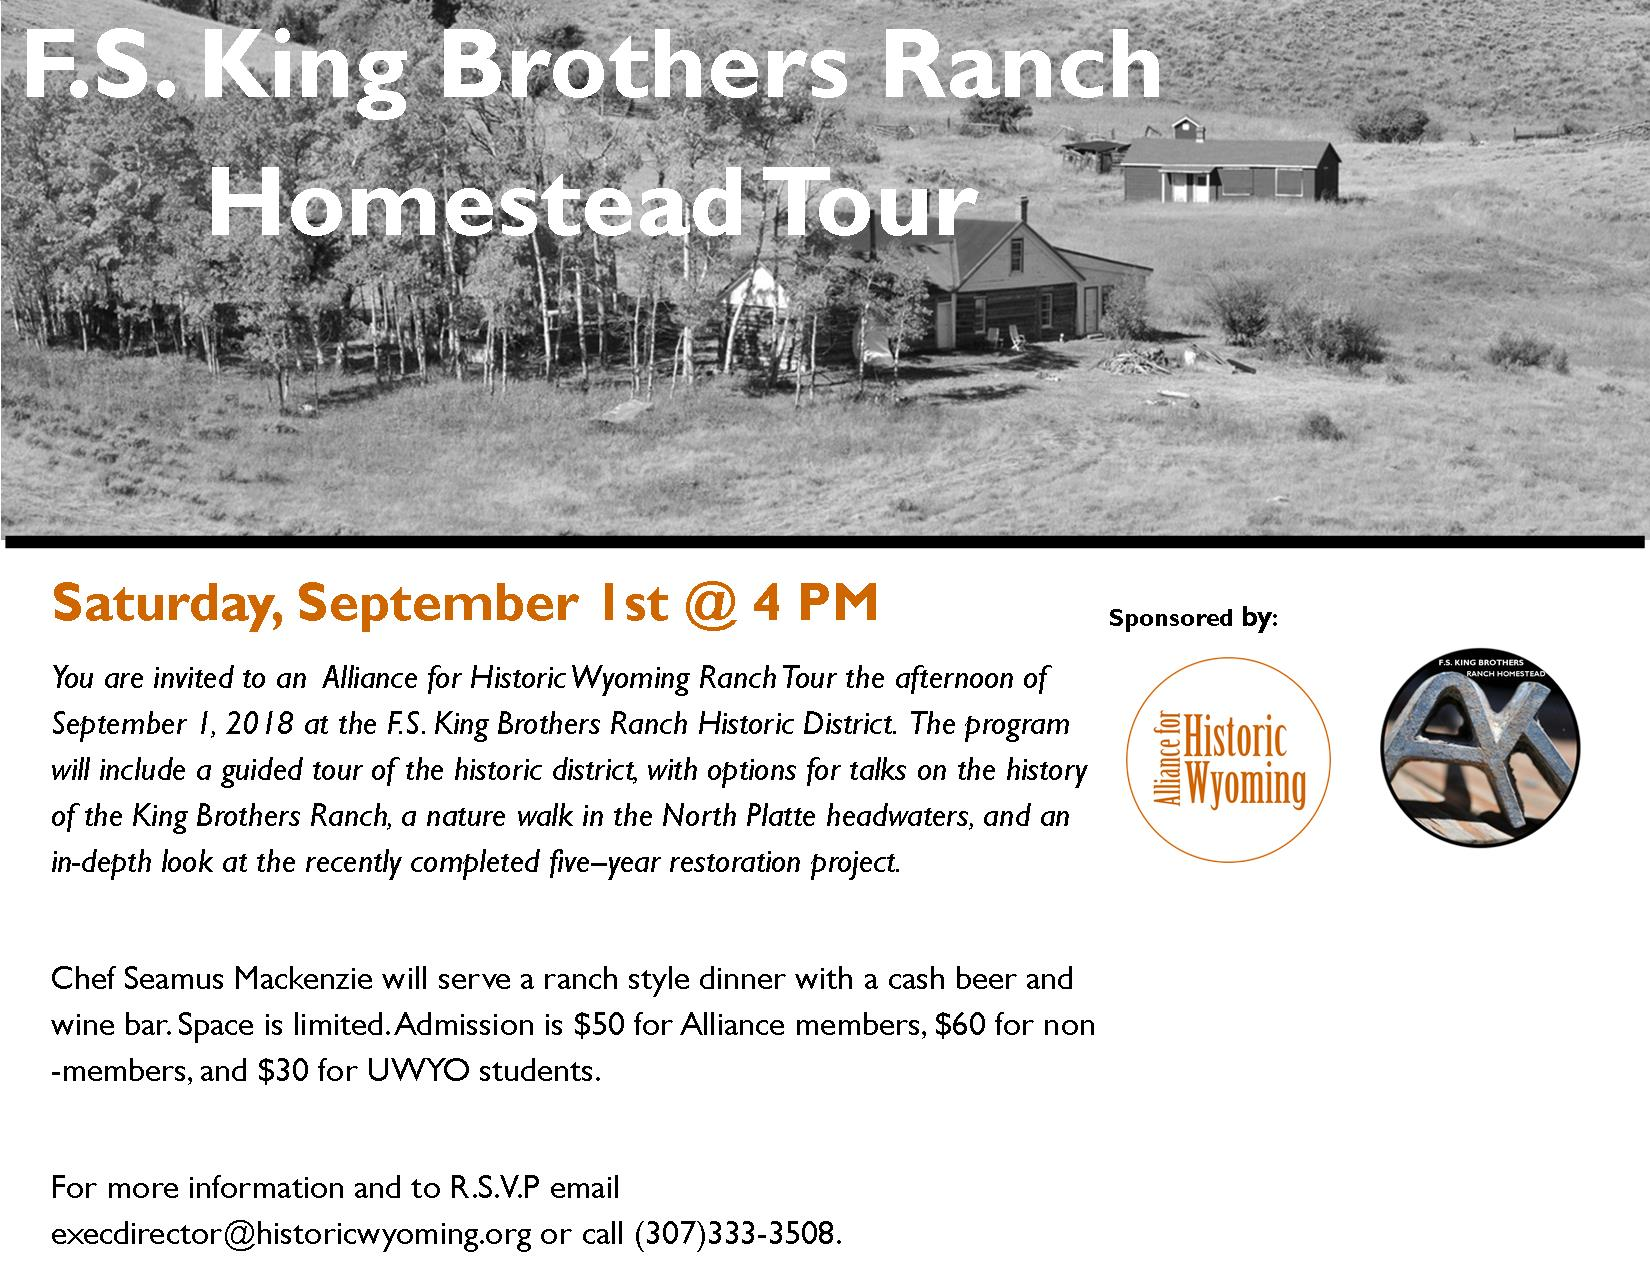 F.S. King Brothers Ranch Homestead Tour.jpg